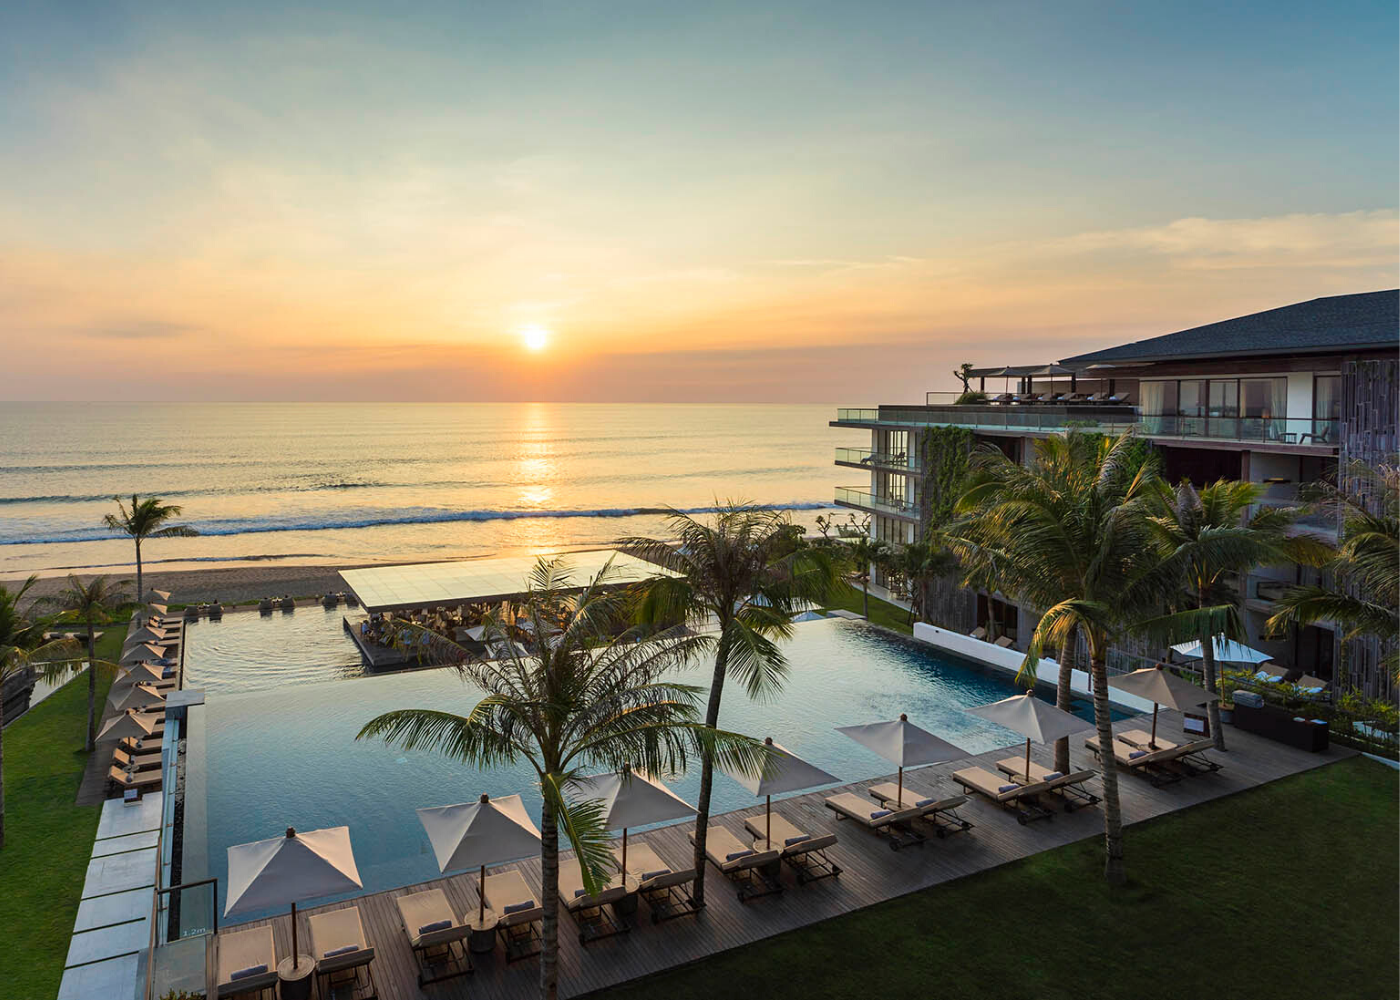 bali resort beachfront